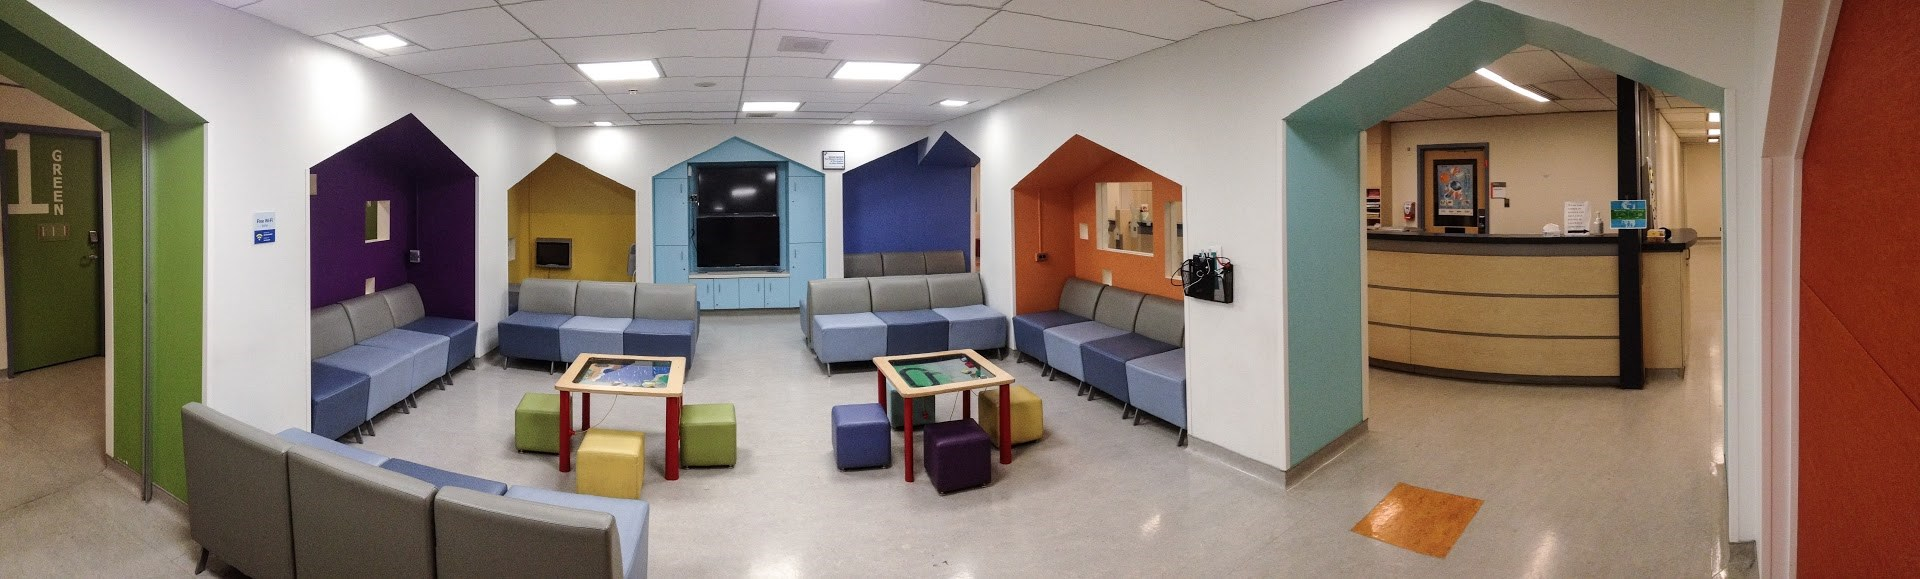 Department waiting room with colourful chairs and tables